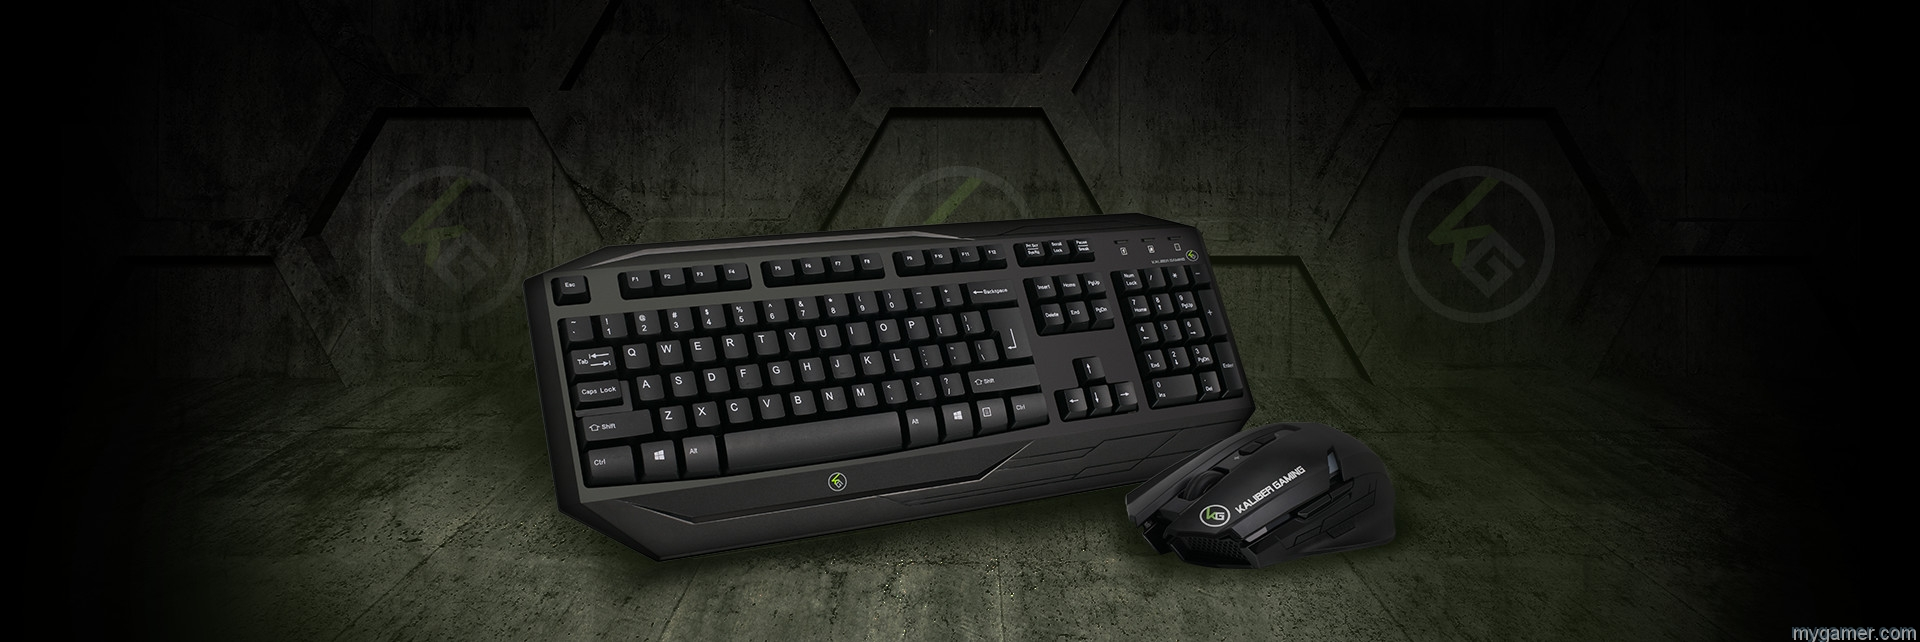 keymander mouse & keyboard for console review Kaliber Gaming's Keymander Mouse & Keyboard for Console Review Kaliber Gaming Keyboard and Mouse